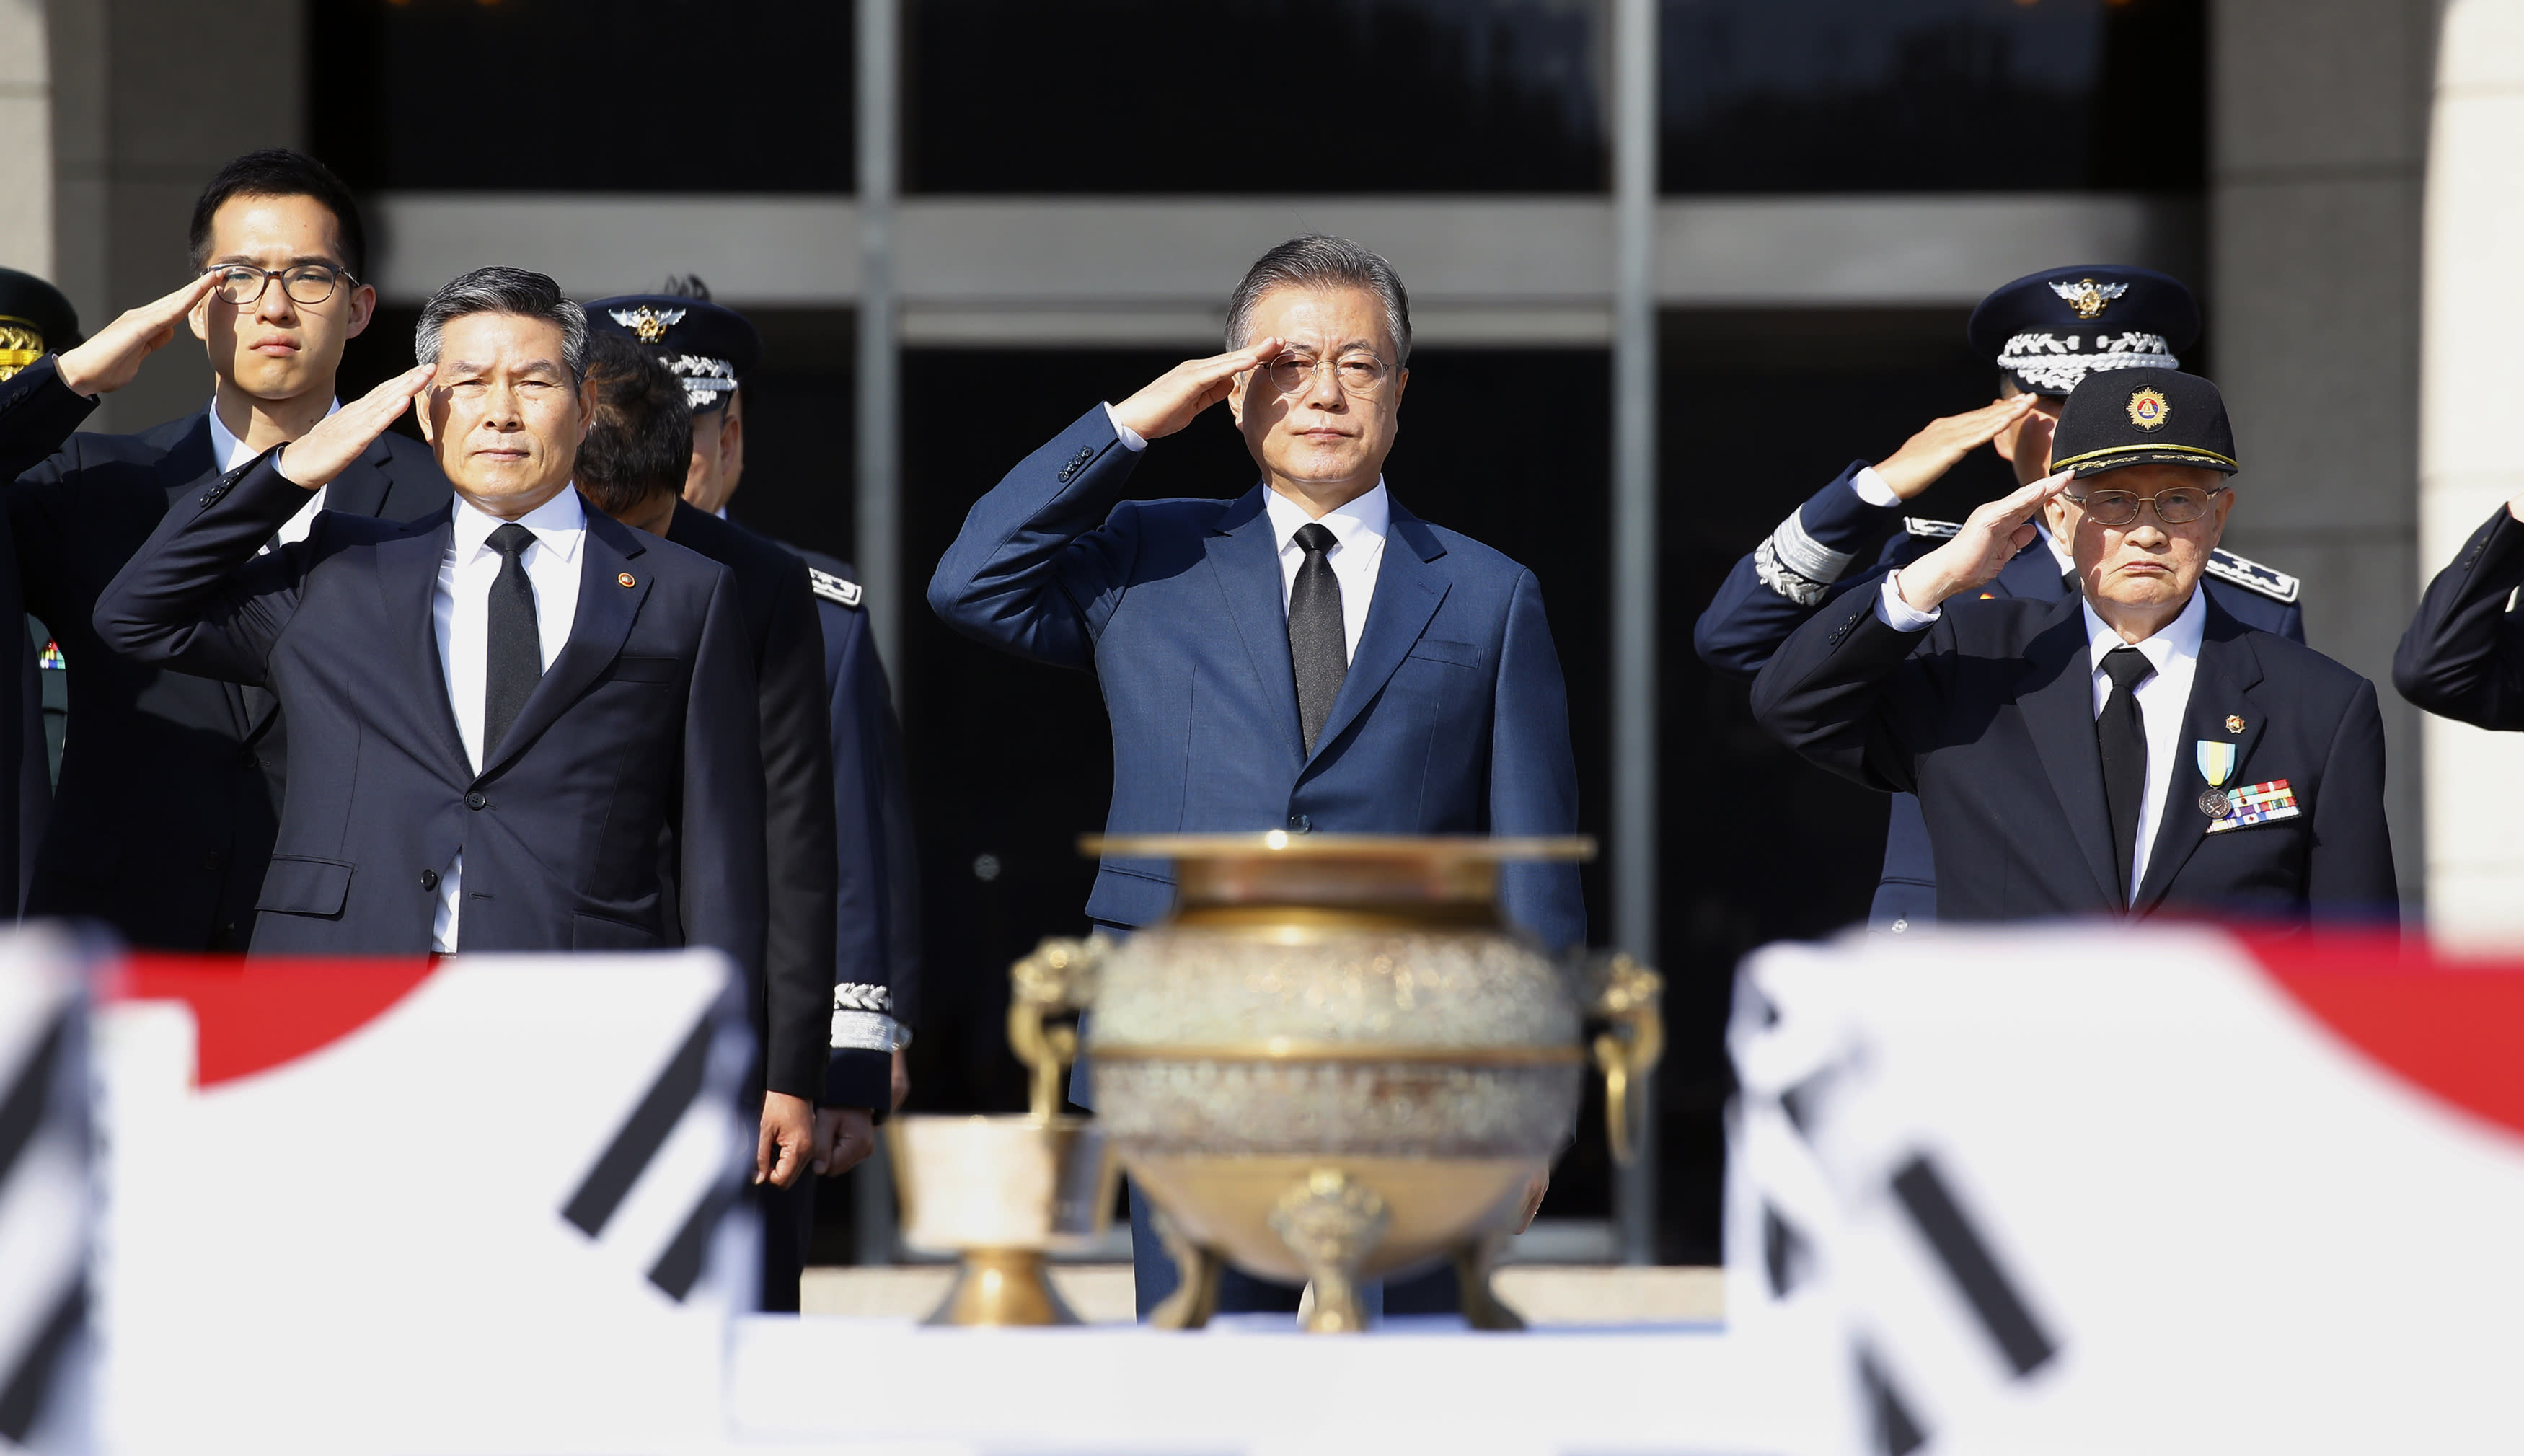 South Korean President Moon Jae-in, center, salutes during the repatriation ceremony for the remains of 64 South Korean soldiers killed in North Korea during the Korean War, which arrived at Seoul Air Base in Seongnam, South Korea, from Hawaii on Monday, Oct. 1, 2018. They were earlier found in North Korea during a joint 1996-2005 excavation project between the United States and North Korea before forensic identification tests in Hawaii confirmed they belong to South Korean war dead, according to Seoul's Defense Ministry. (Bae Jae-man/Yonhap via AP)